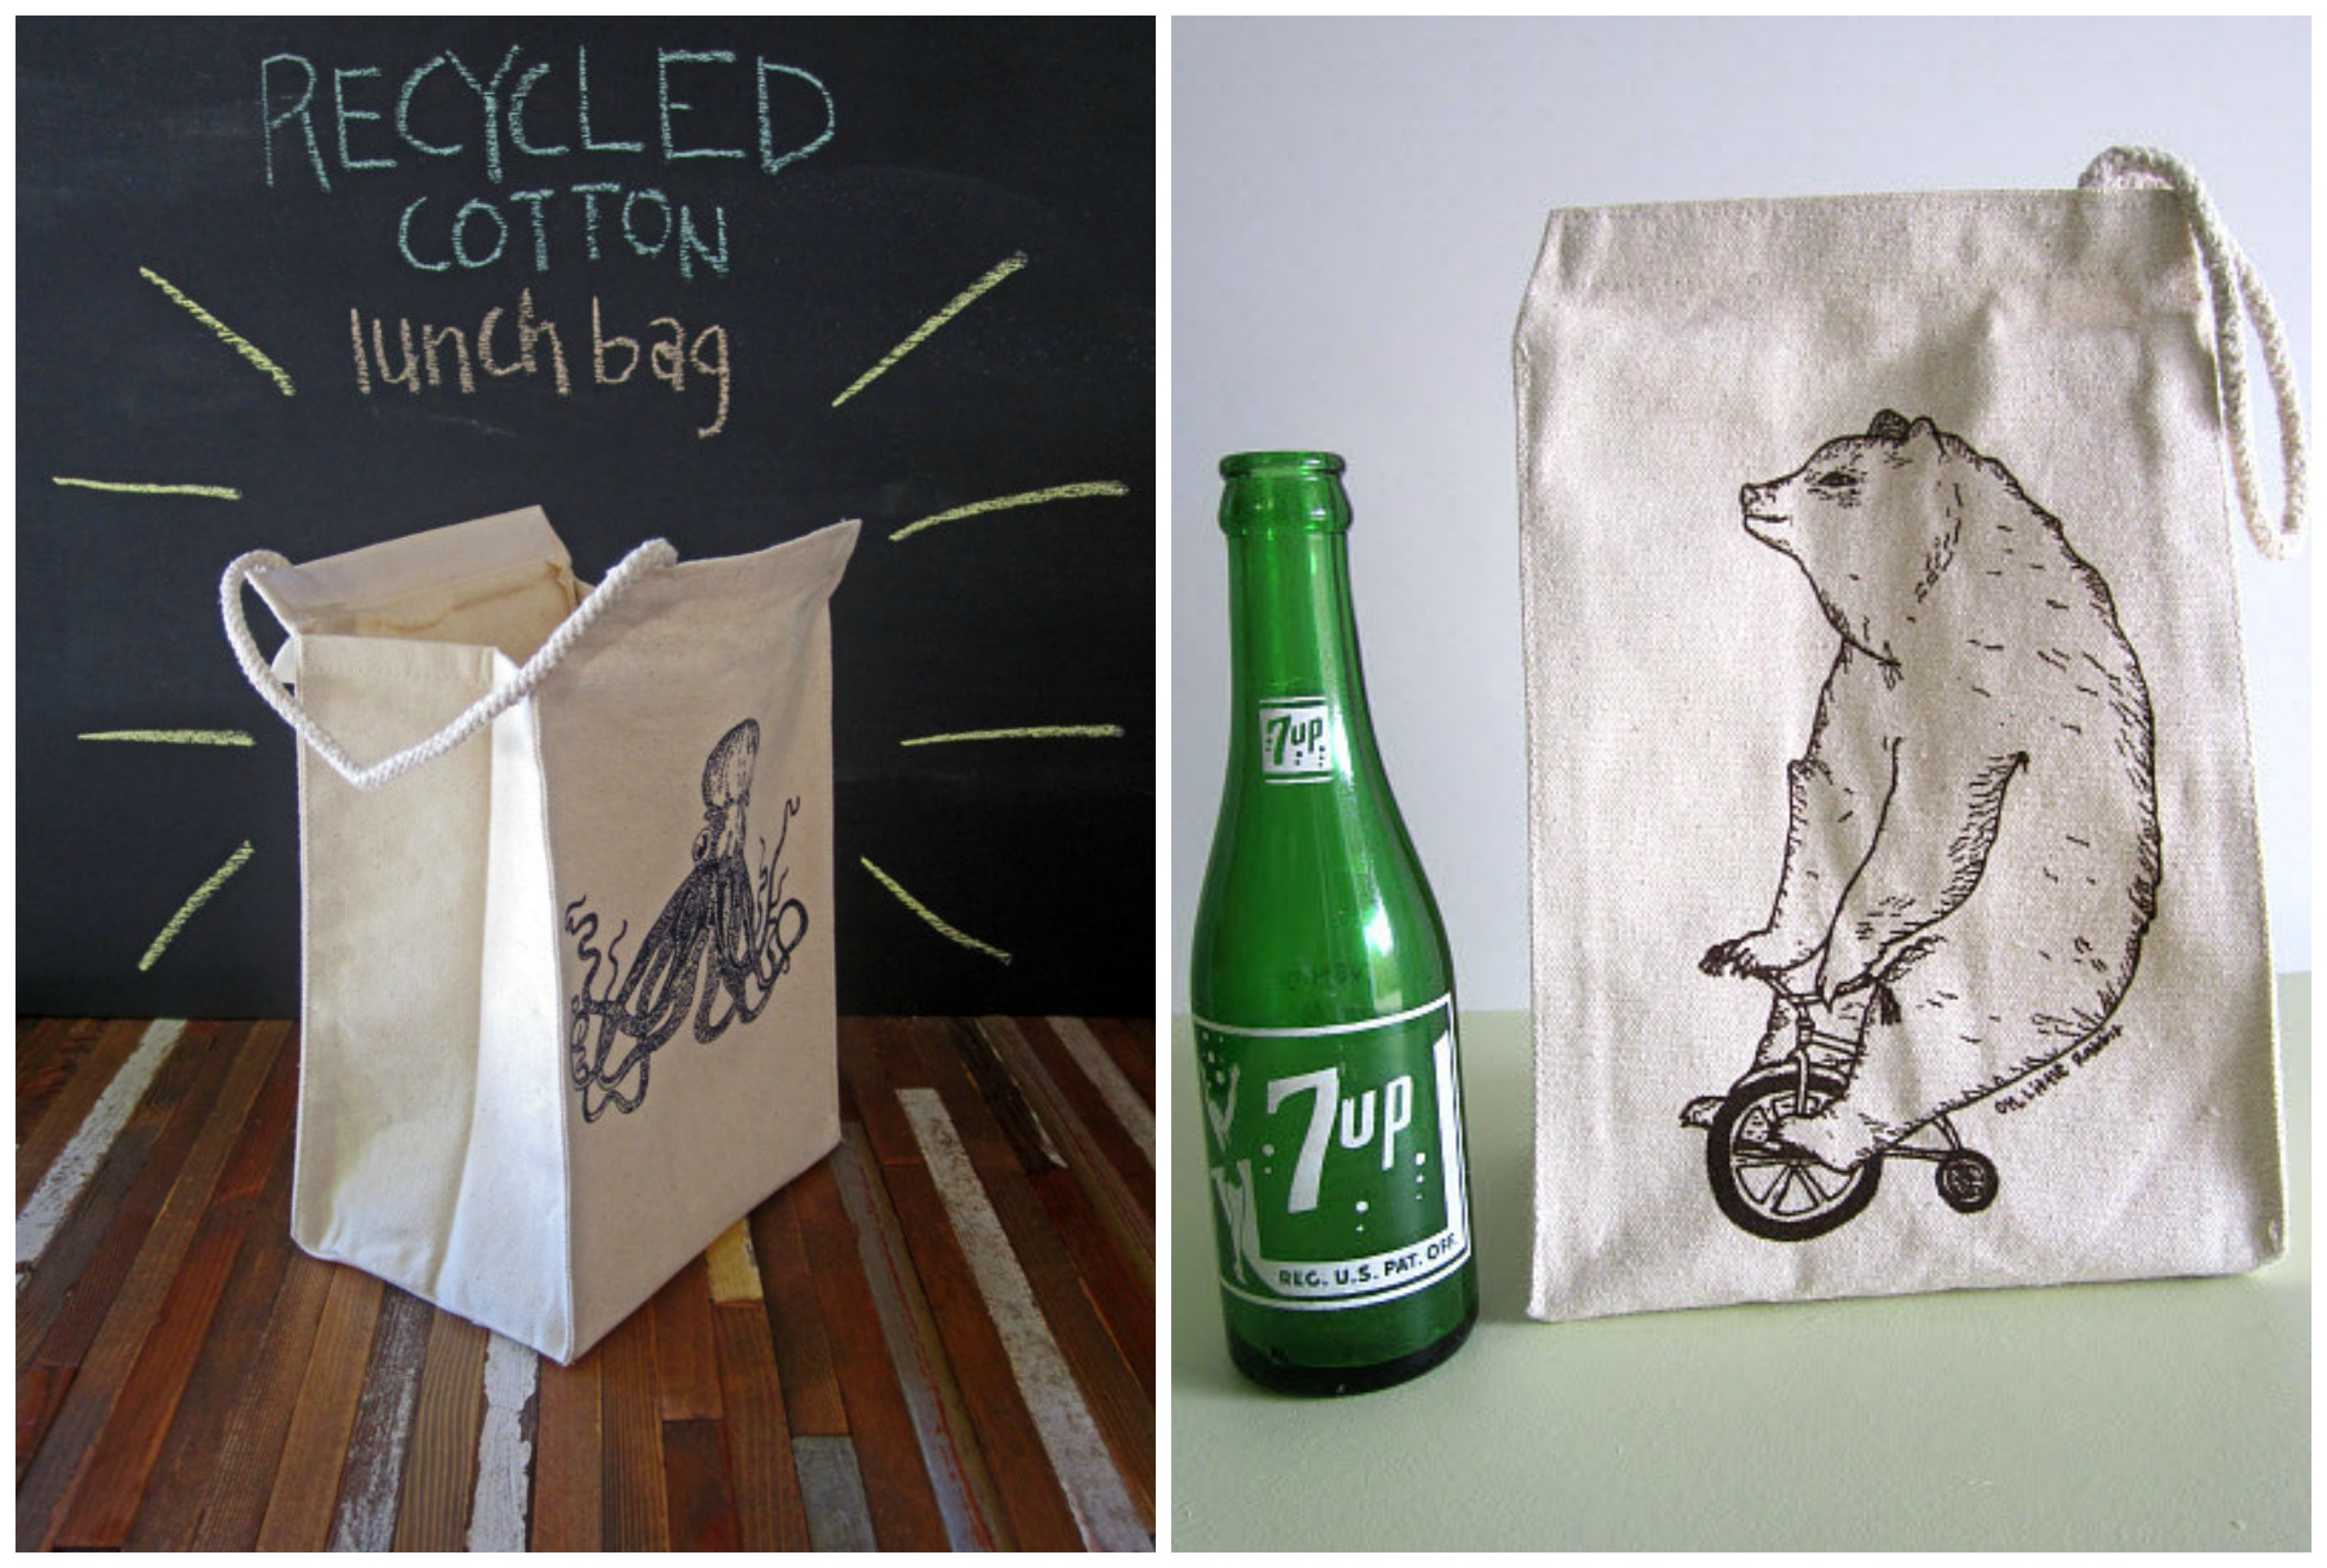 Bringing Lunch To School Just Got Cooler With These Quirky Reusable Bags